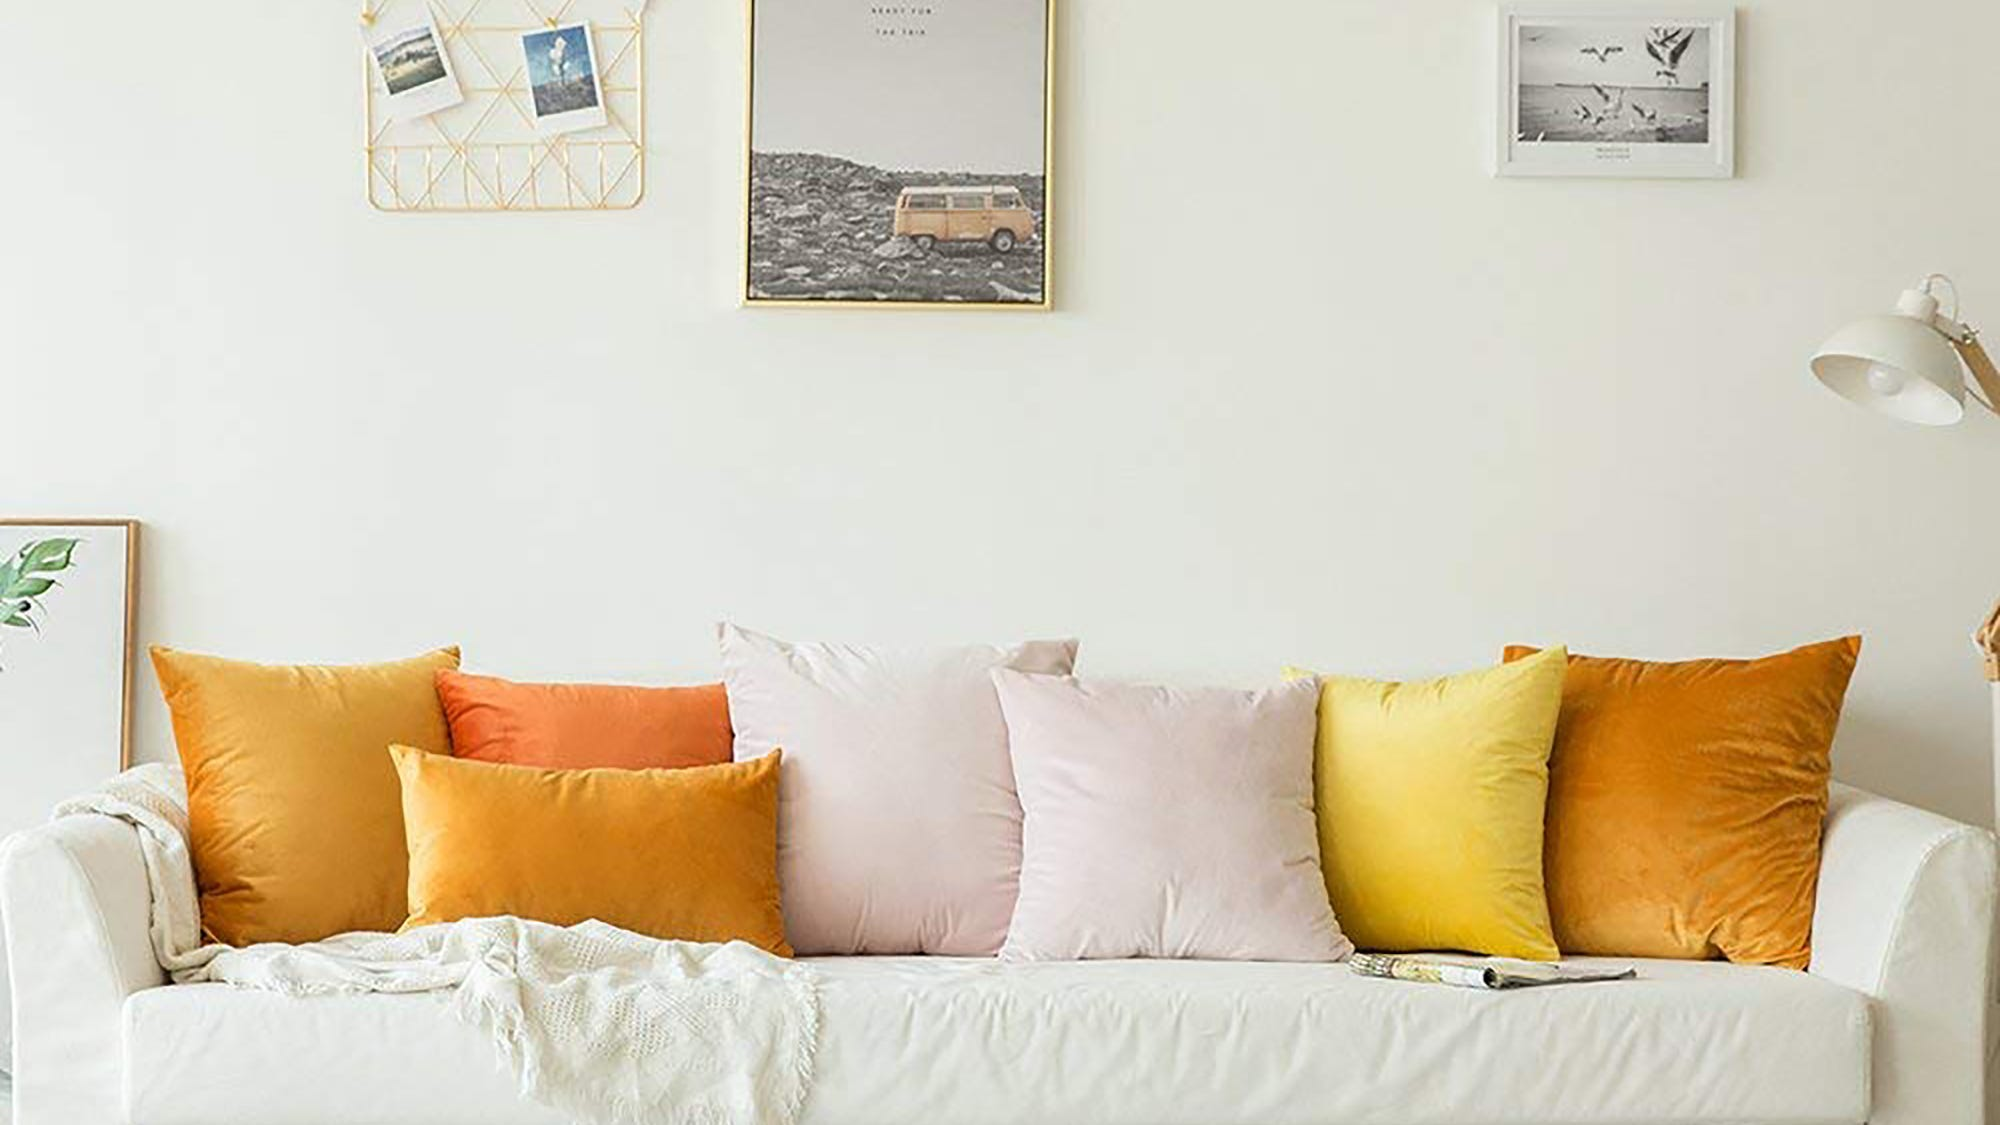 Cheap Throw Pillows For Couch Or Bed Decor Under 30